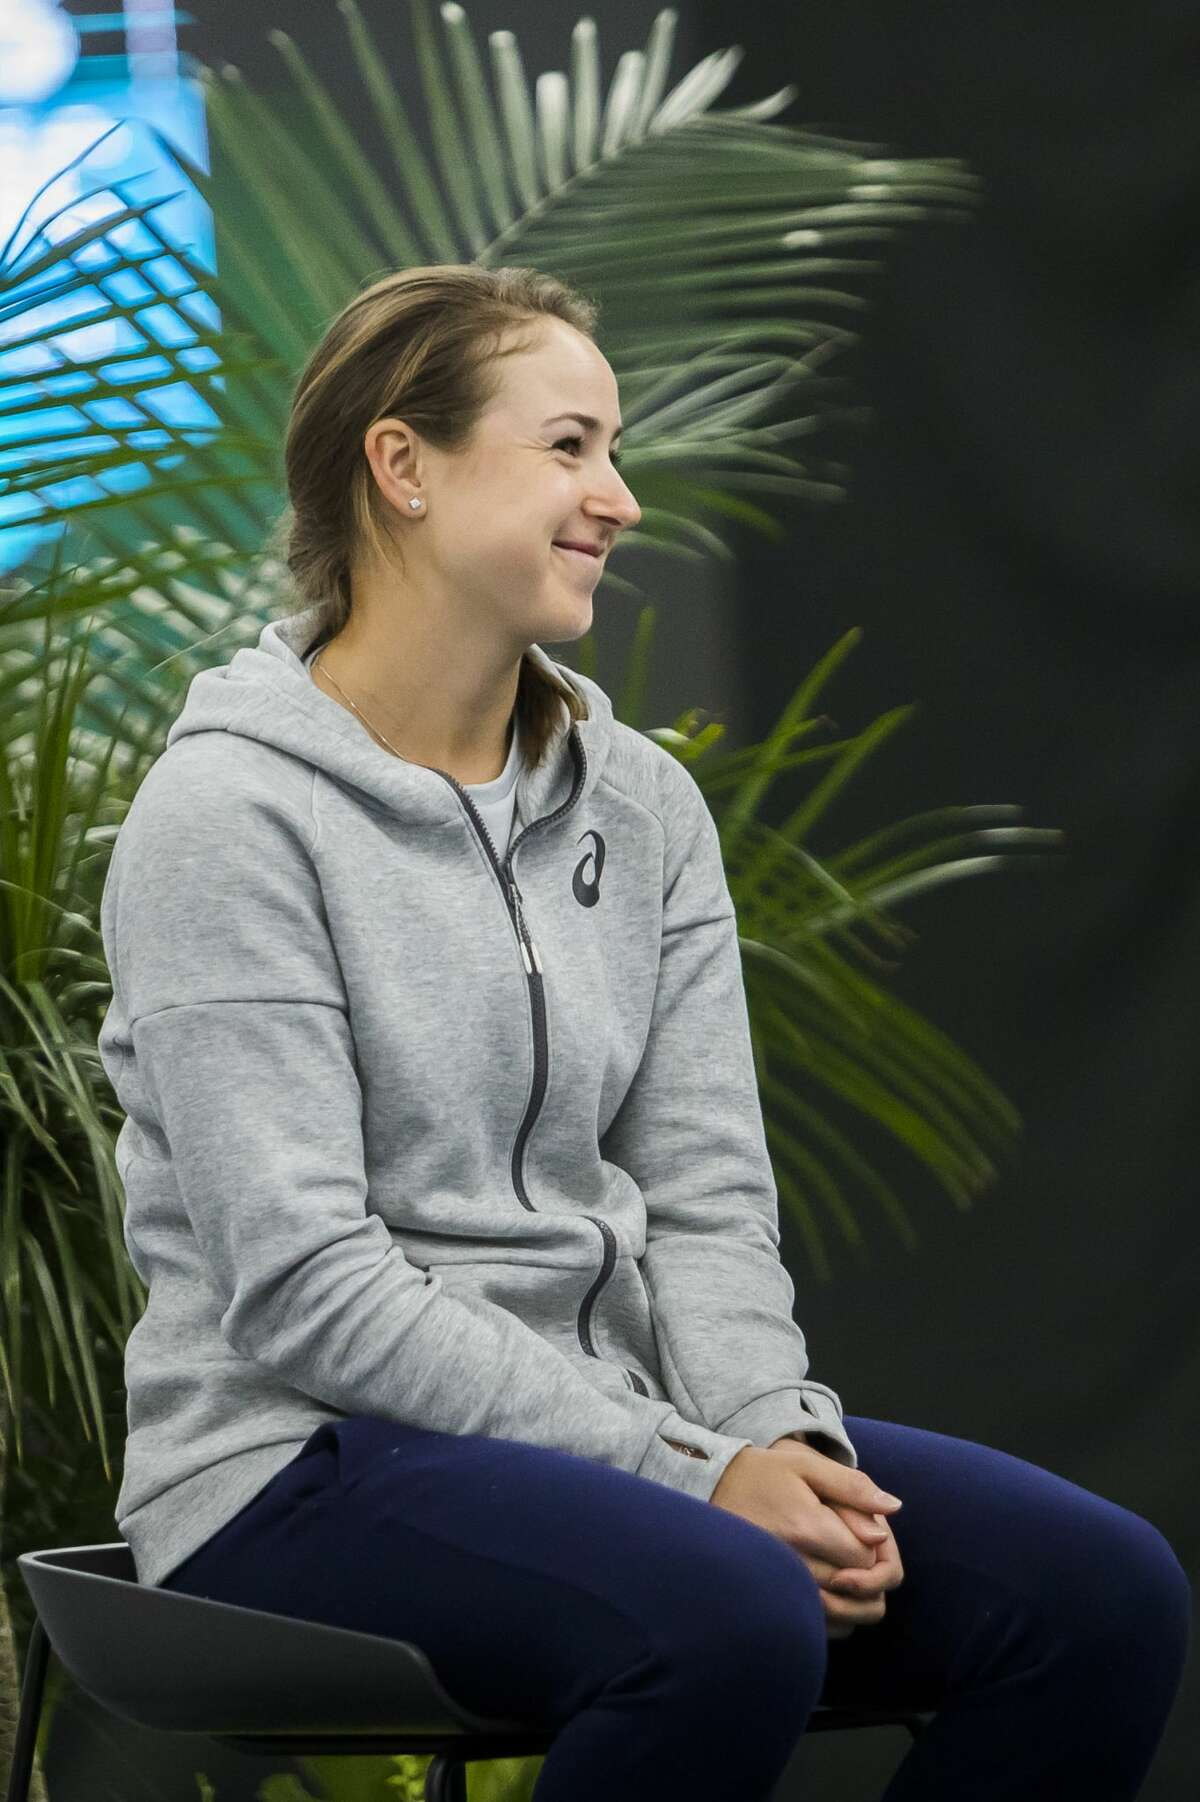 Rebecca Peterson of Sweden is introduced during a press conference as part of the Dow Tennis Classic on Monday, Jan. 28, 2019 at the Greater Midland Tennis Center. (Katy Kildee/kkildee@mdn.net)